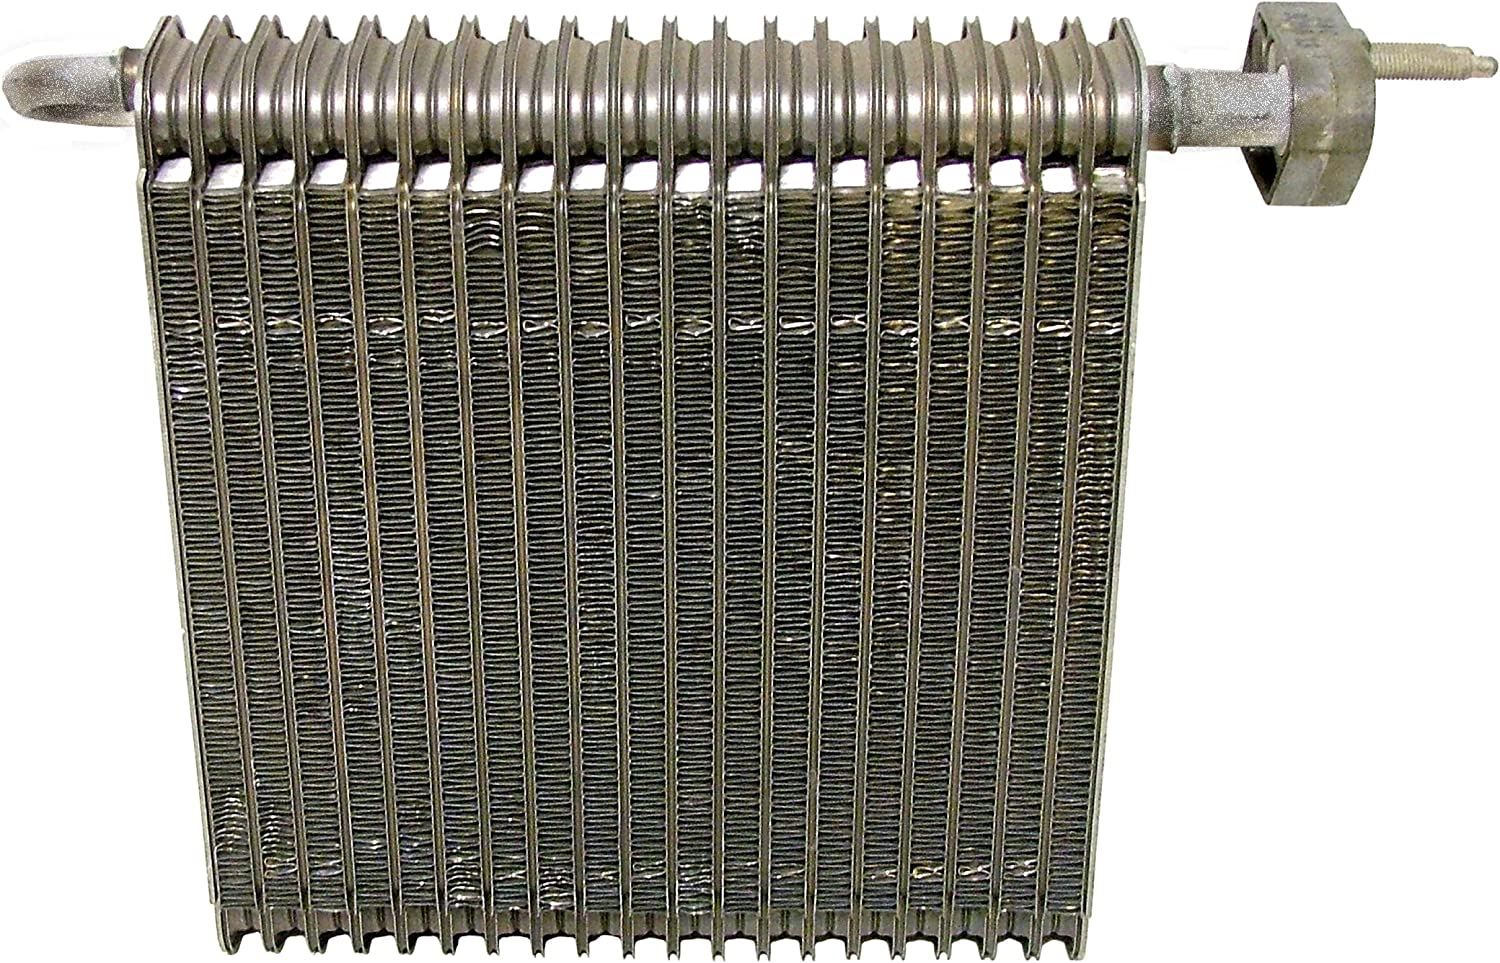 GM Genuine Parts 15-62690 Air Conditioning Evaporator Kit with Seals, Stud, and Retainer